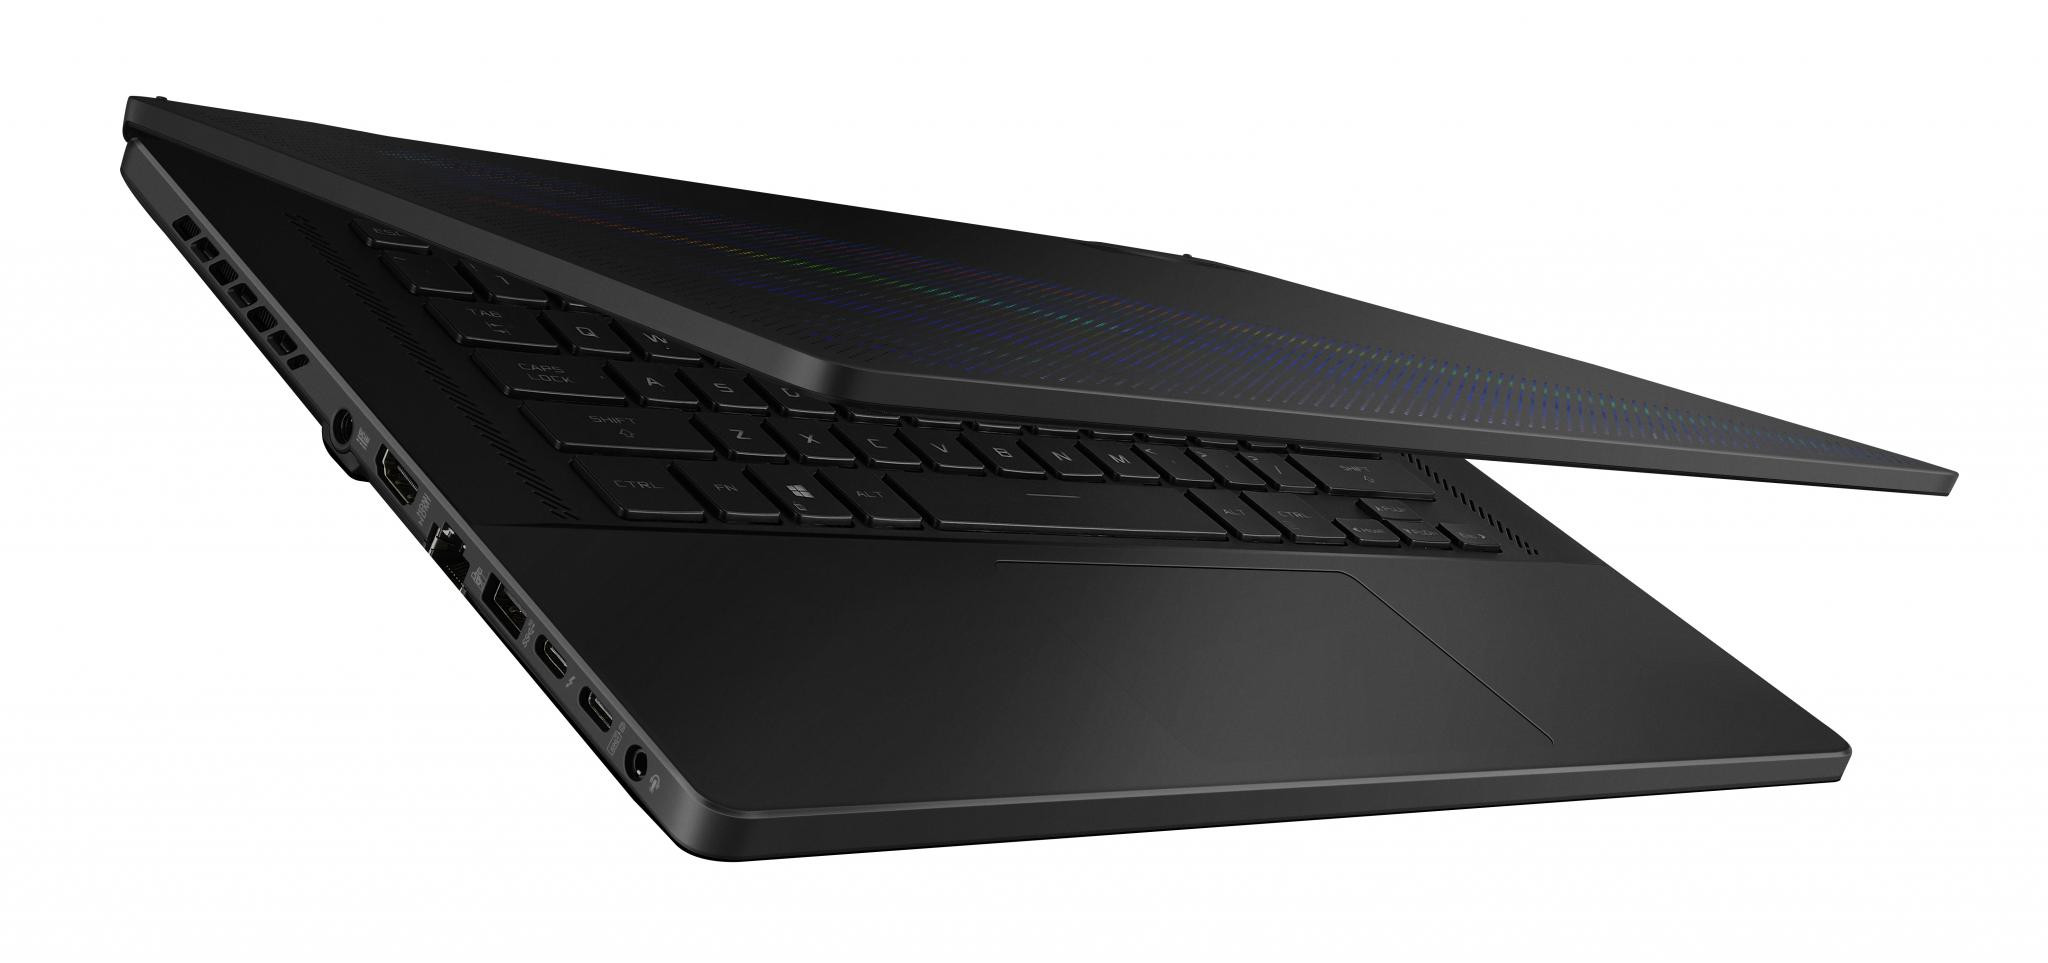 Laptop Gaming ASUS ROG Zephyrus M16 GU603HM-K8005, 16-inch, WQXGA (2560 x 1600) 16:10, Anti-glare display, IPS-level Panel, Intel® Core™ i7-11800HProcessor2.3GHz(24MCache,upto4.6GHz,8Cores), NVIDIA®GeForceRTX™3060 Laptop GPU, With ROG Boost up to 1525MHz at 80W (95W with Dynamic - imaginea 4